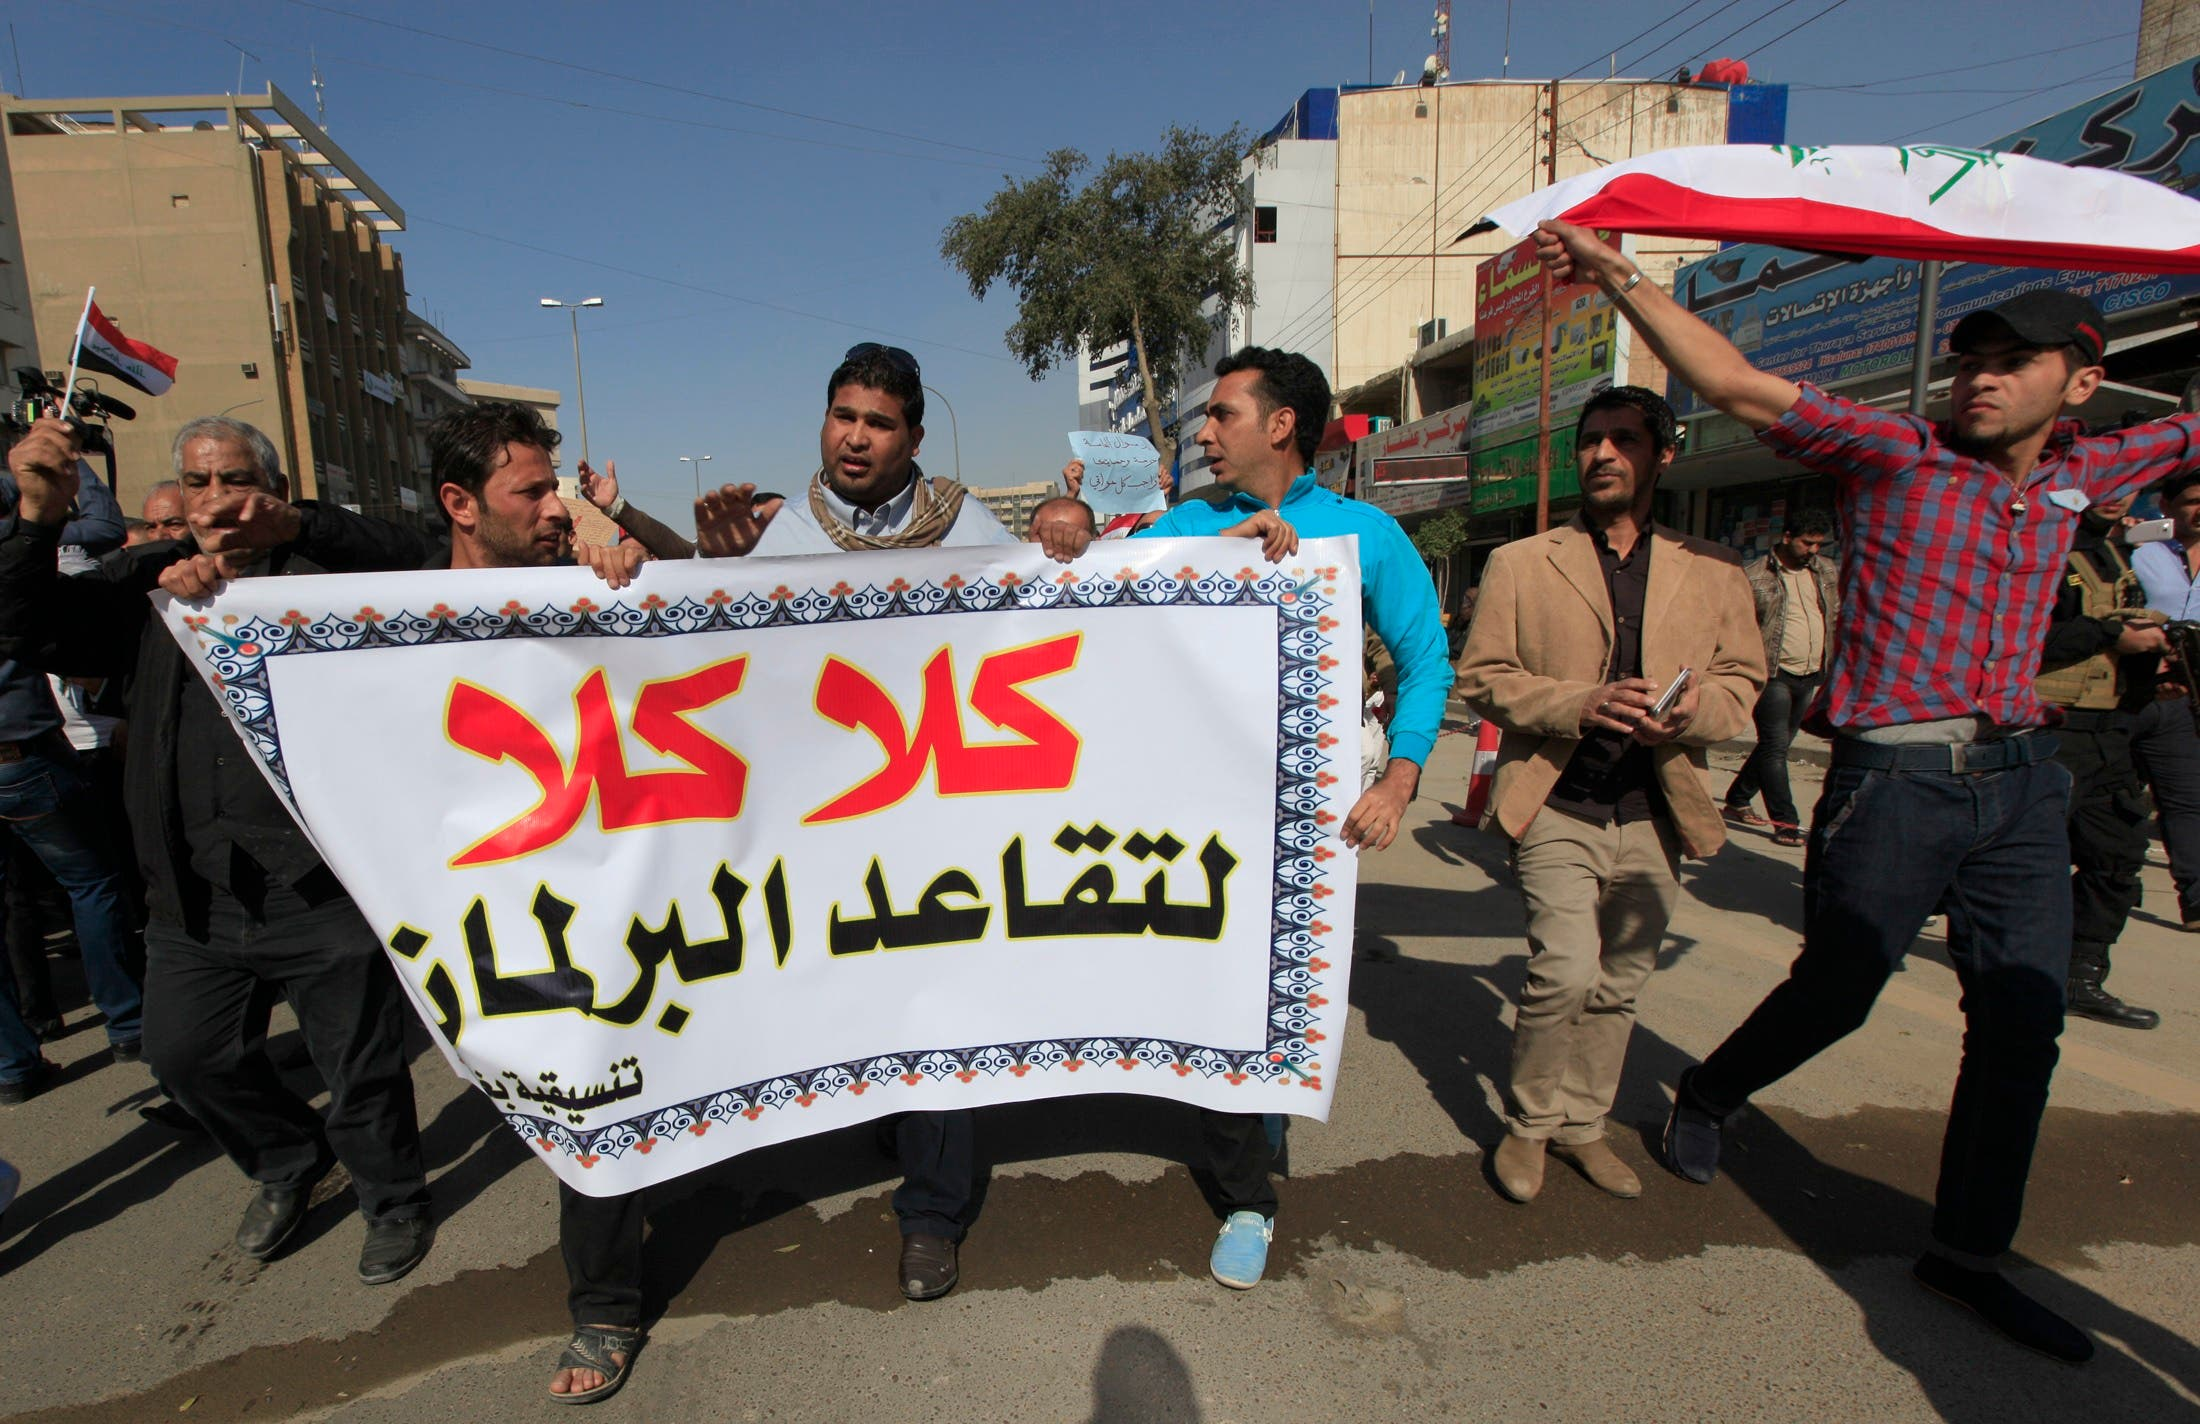 Protests against parliamentary pensions in Iraq